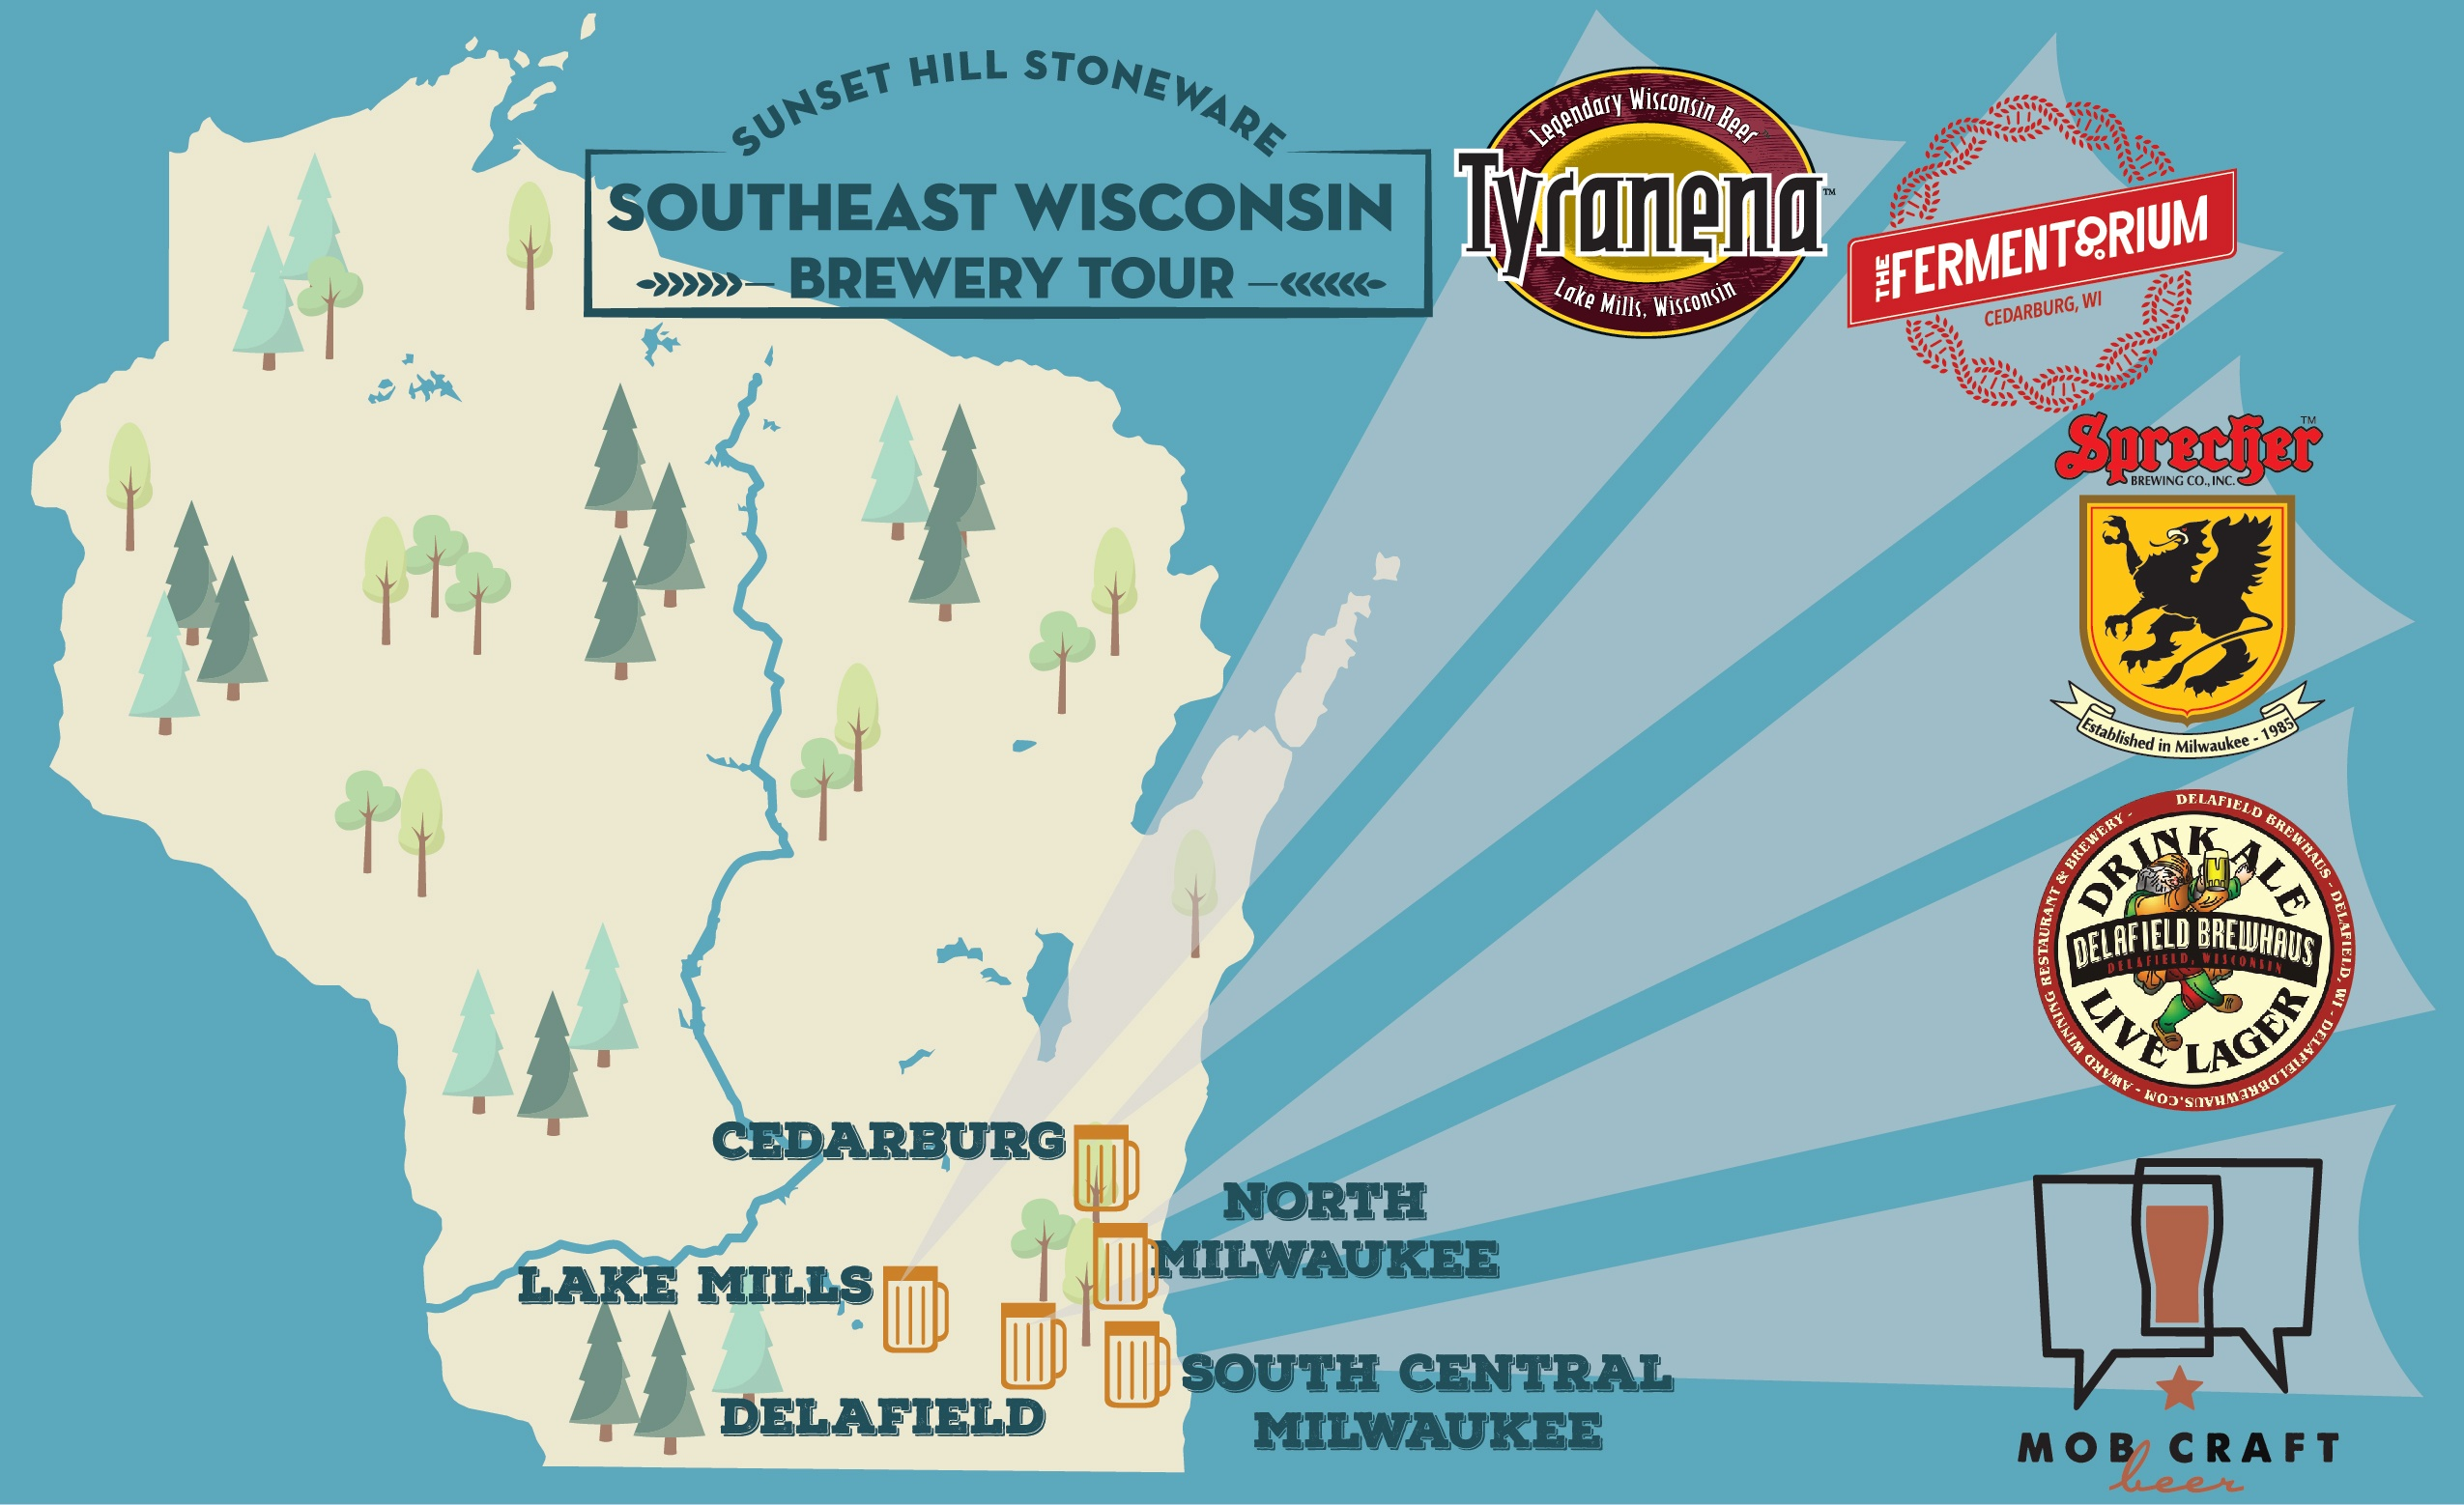 Brew Tour: Find Sunset Hill Stoneware in Southeast Wisconsin